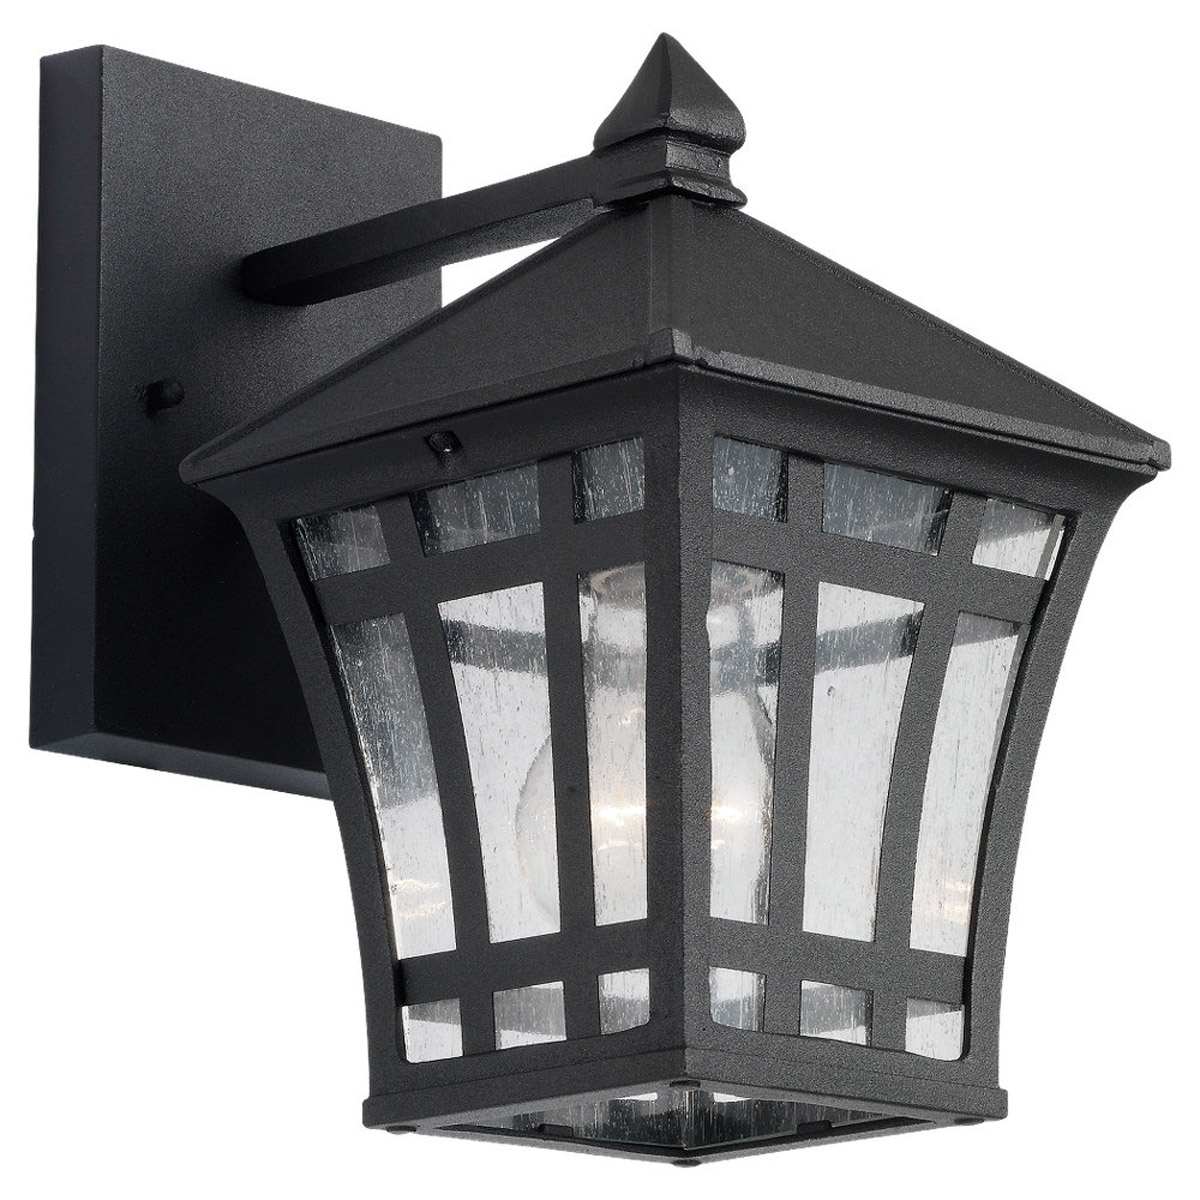 Sea Gull Lighting Herrington 1 Light Outdoor Wall Lantern in Black 88131-12